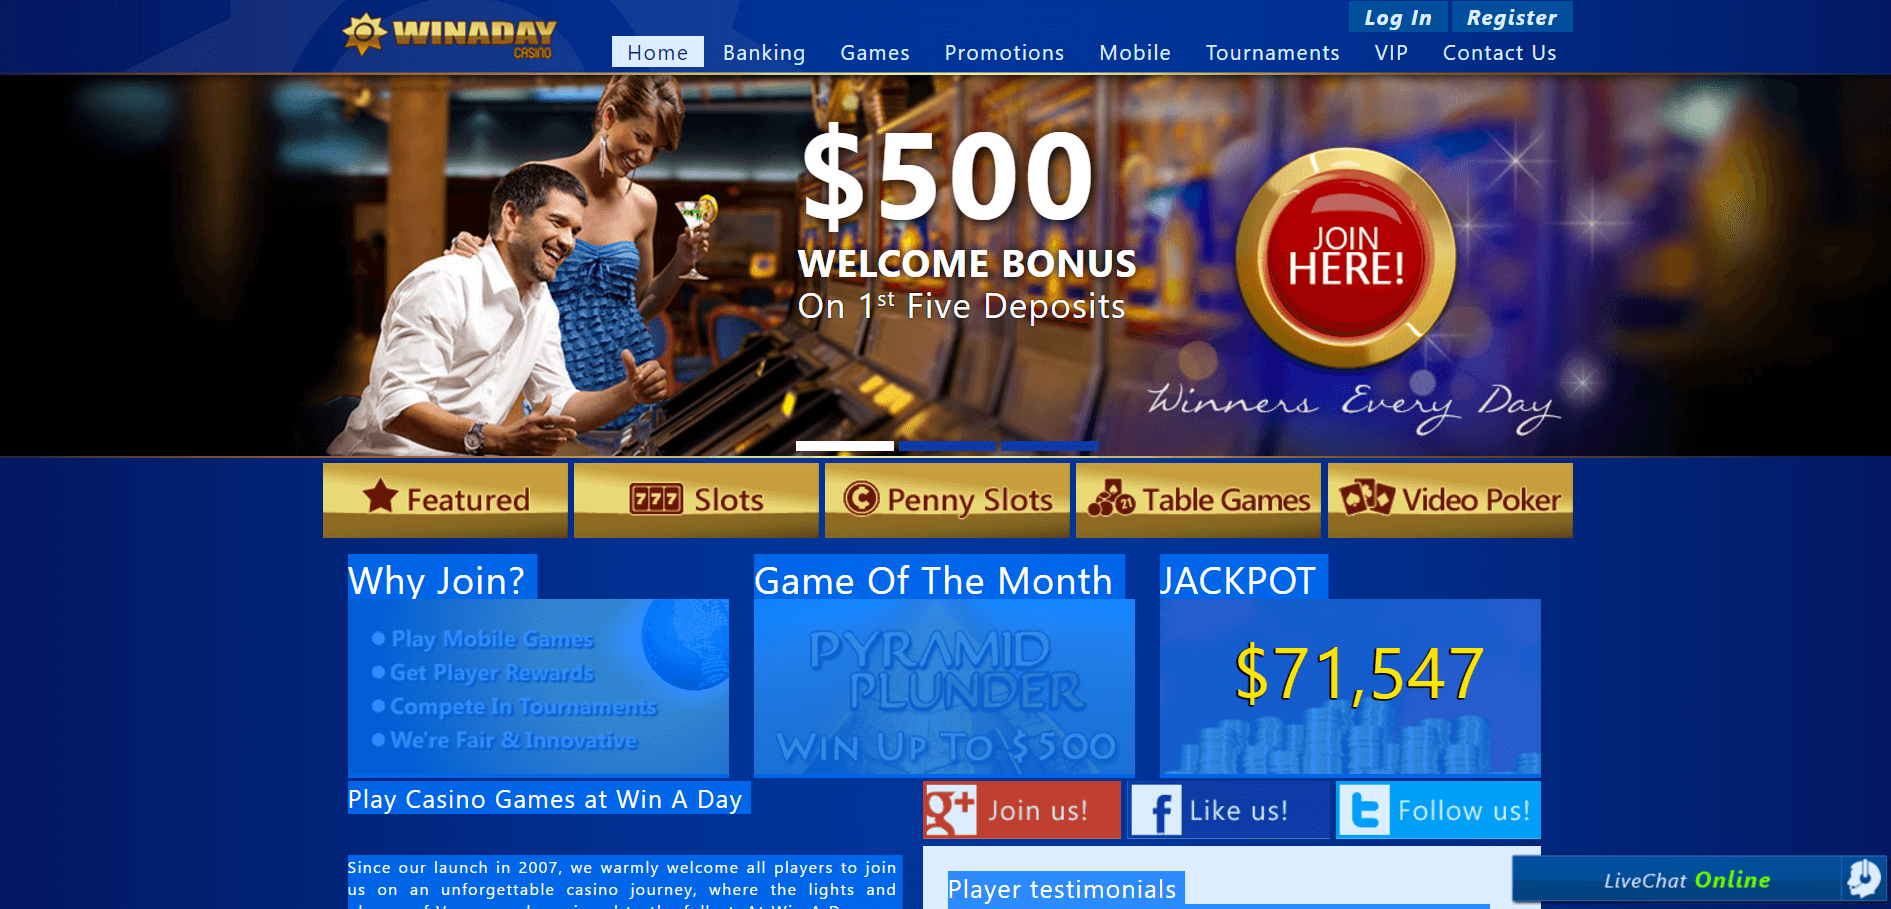 An image of the Winaday Casino Website home page